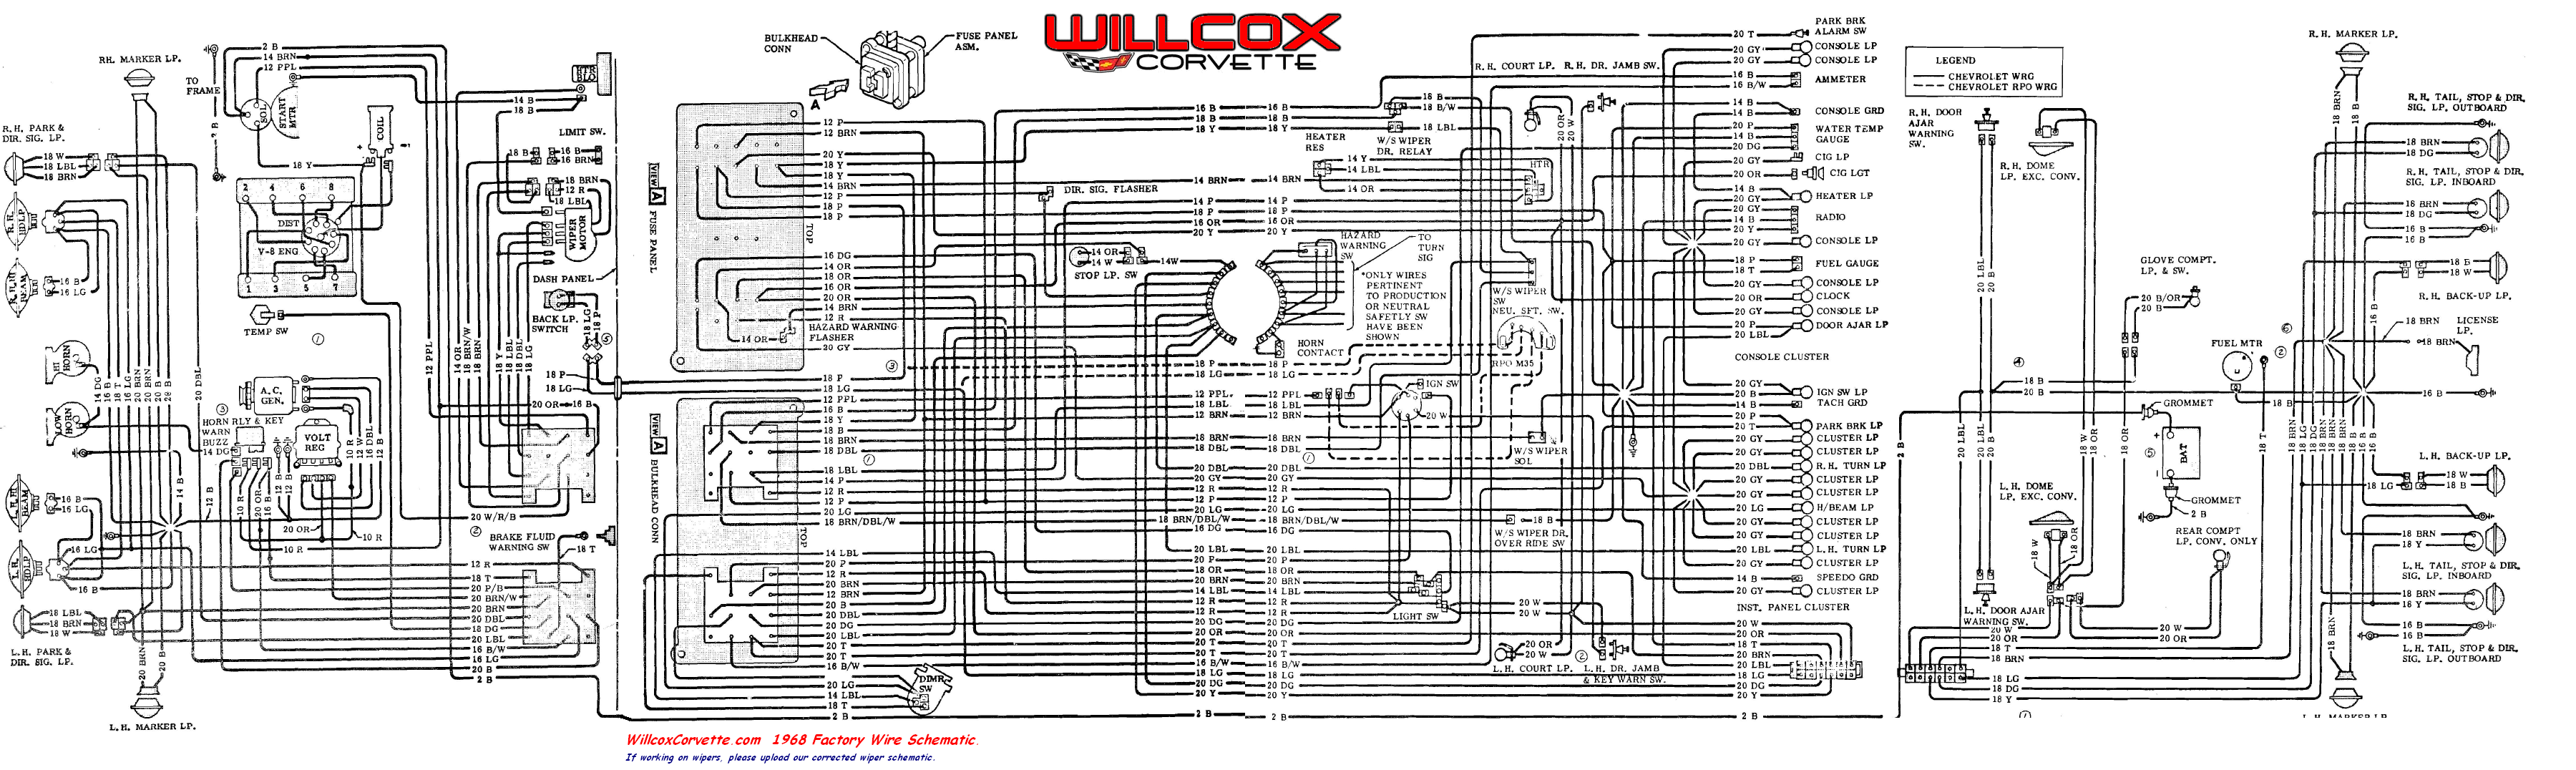 68 wire tracer 1973 corvette wiring diagram 1973 wiring diagrams instruction 1976 corvette wiring harness at gsmx.co